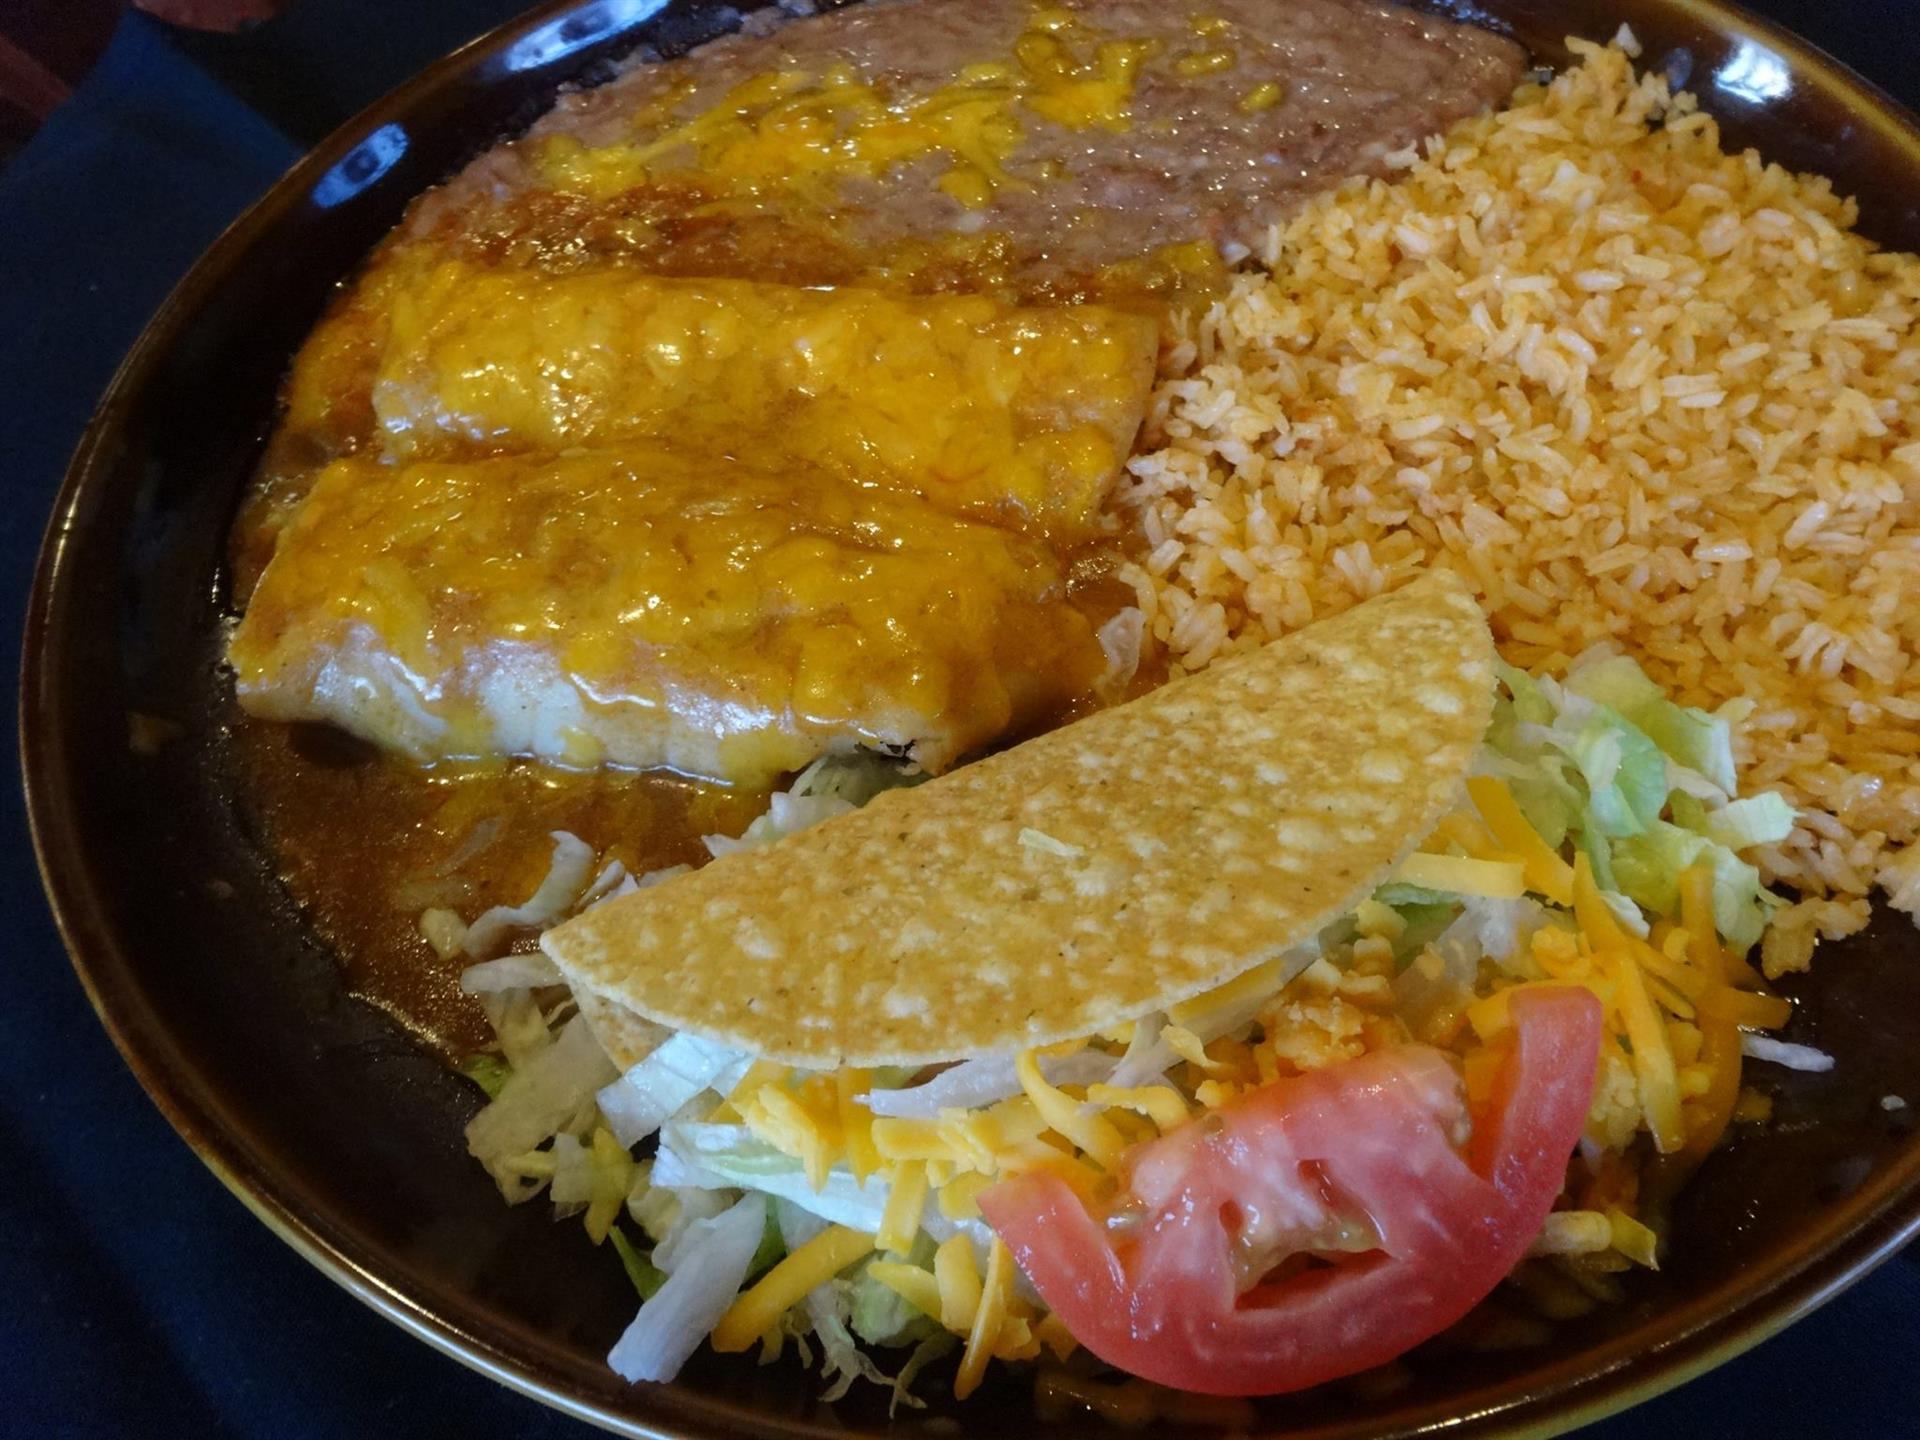 2 enchiladas and a beef taco on a plate with